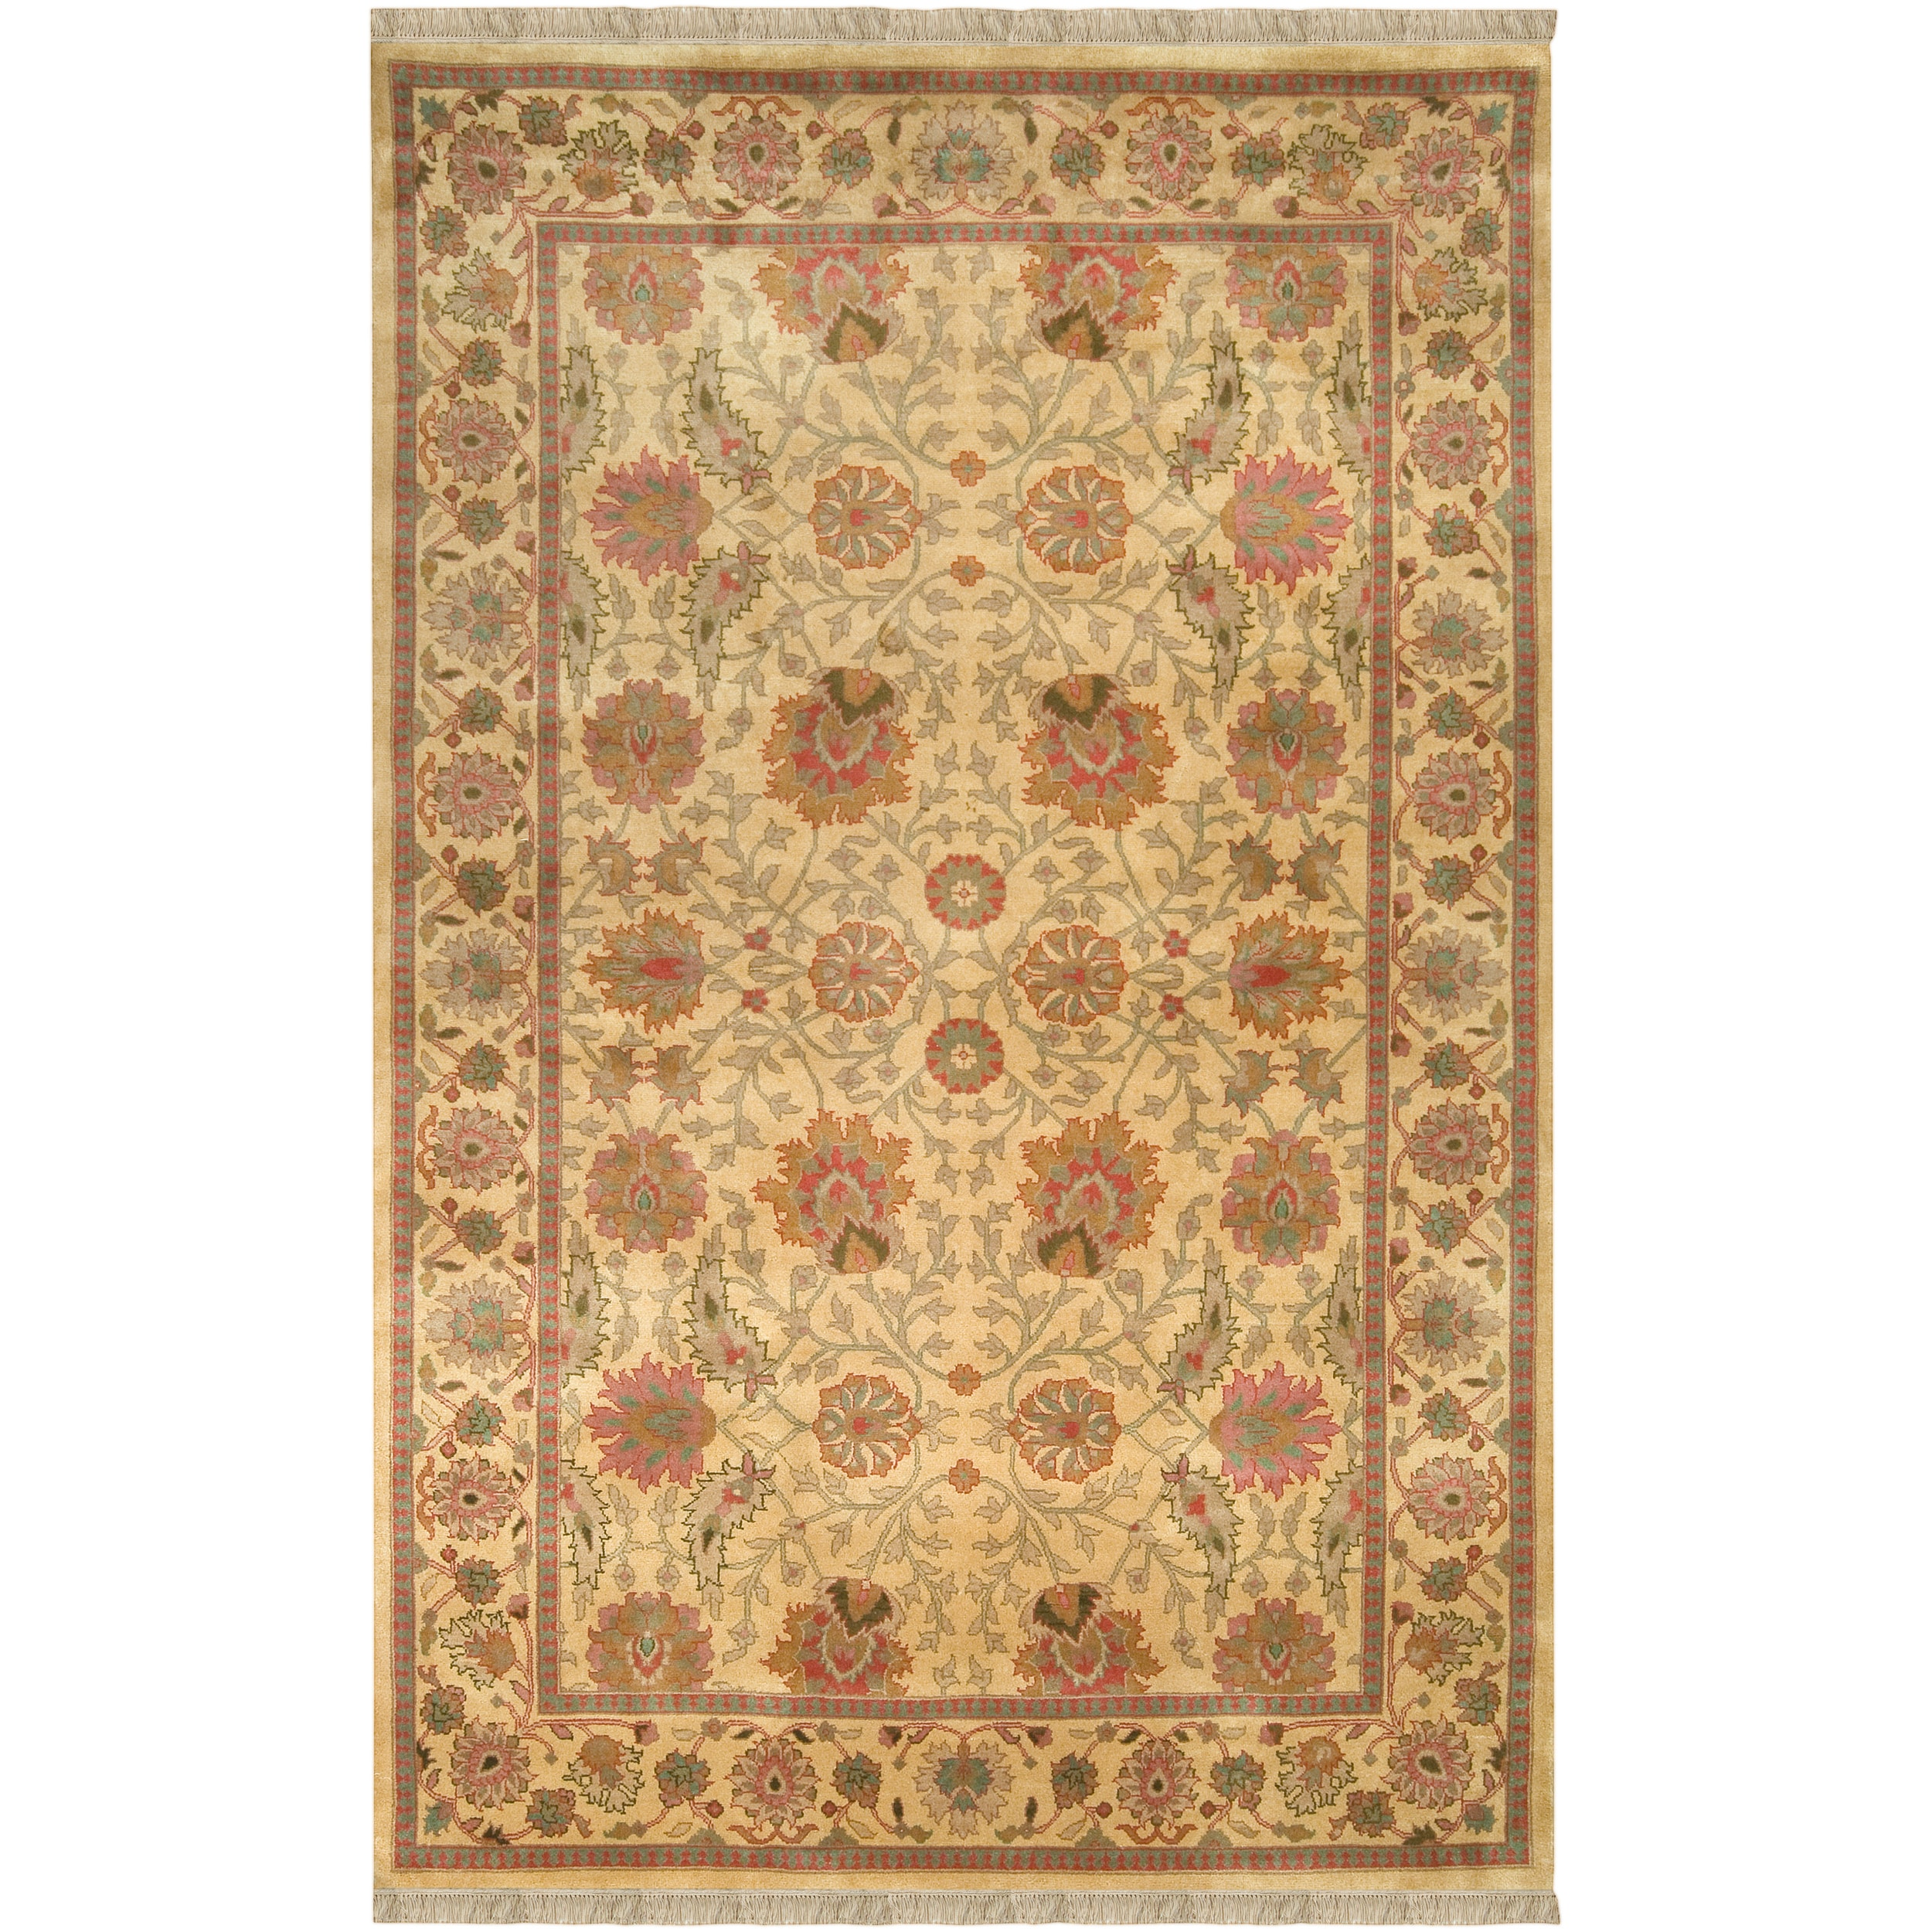 "Hand Knotted Scoresby Semi-Worsted New Zealand Wool Rug (9'6"" x 13'6"")"